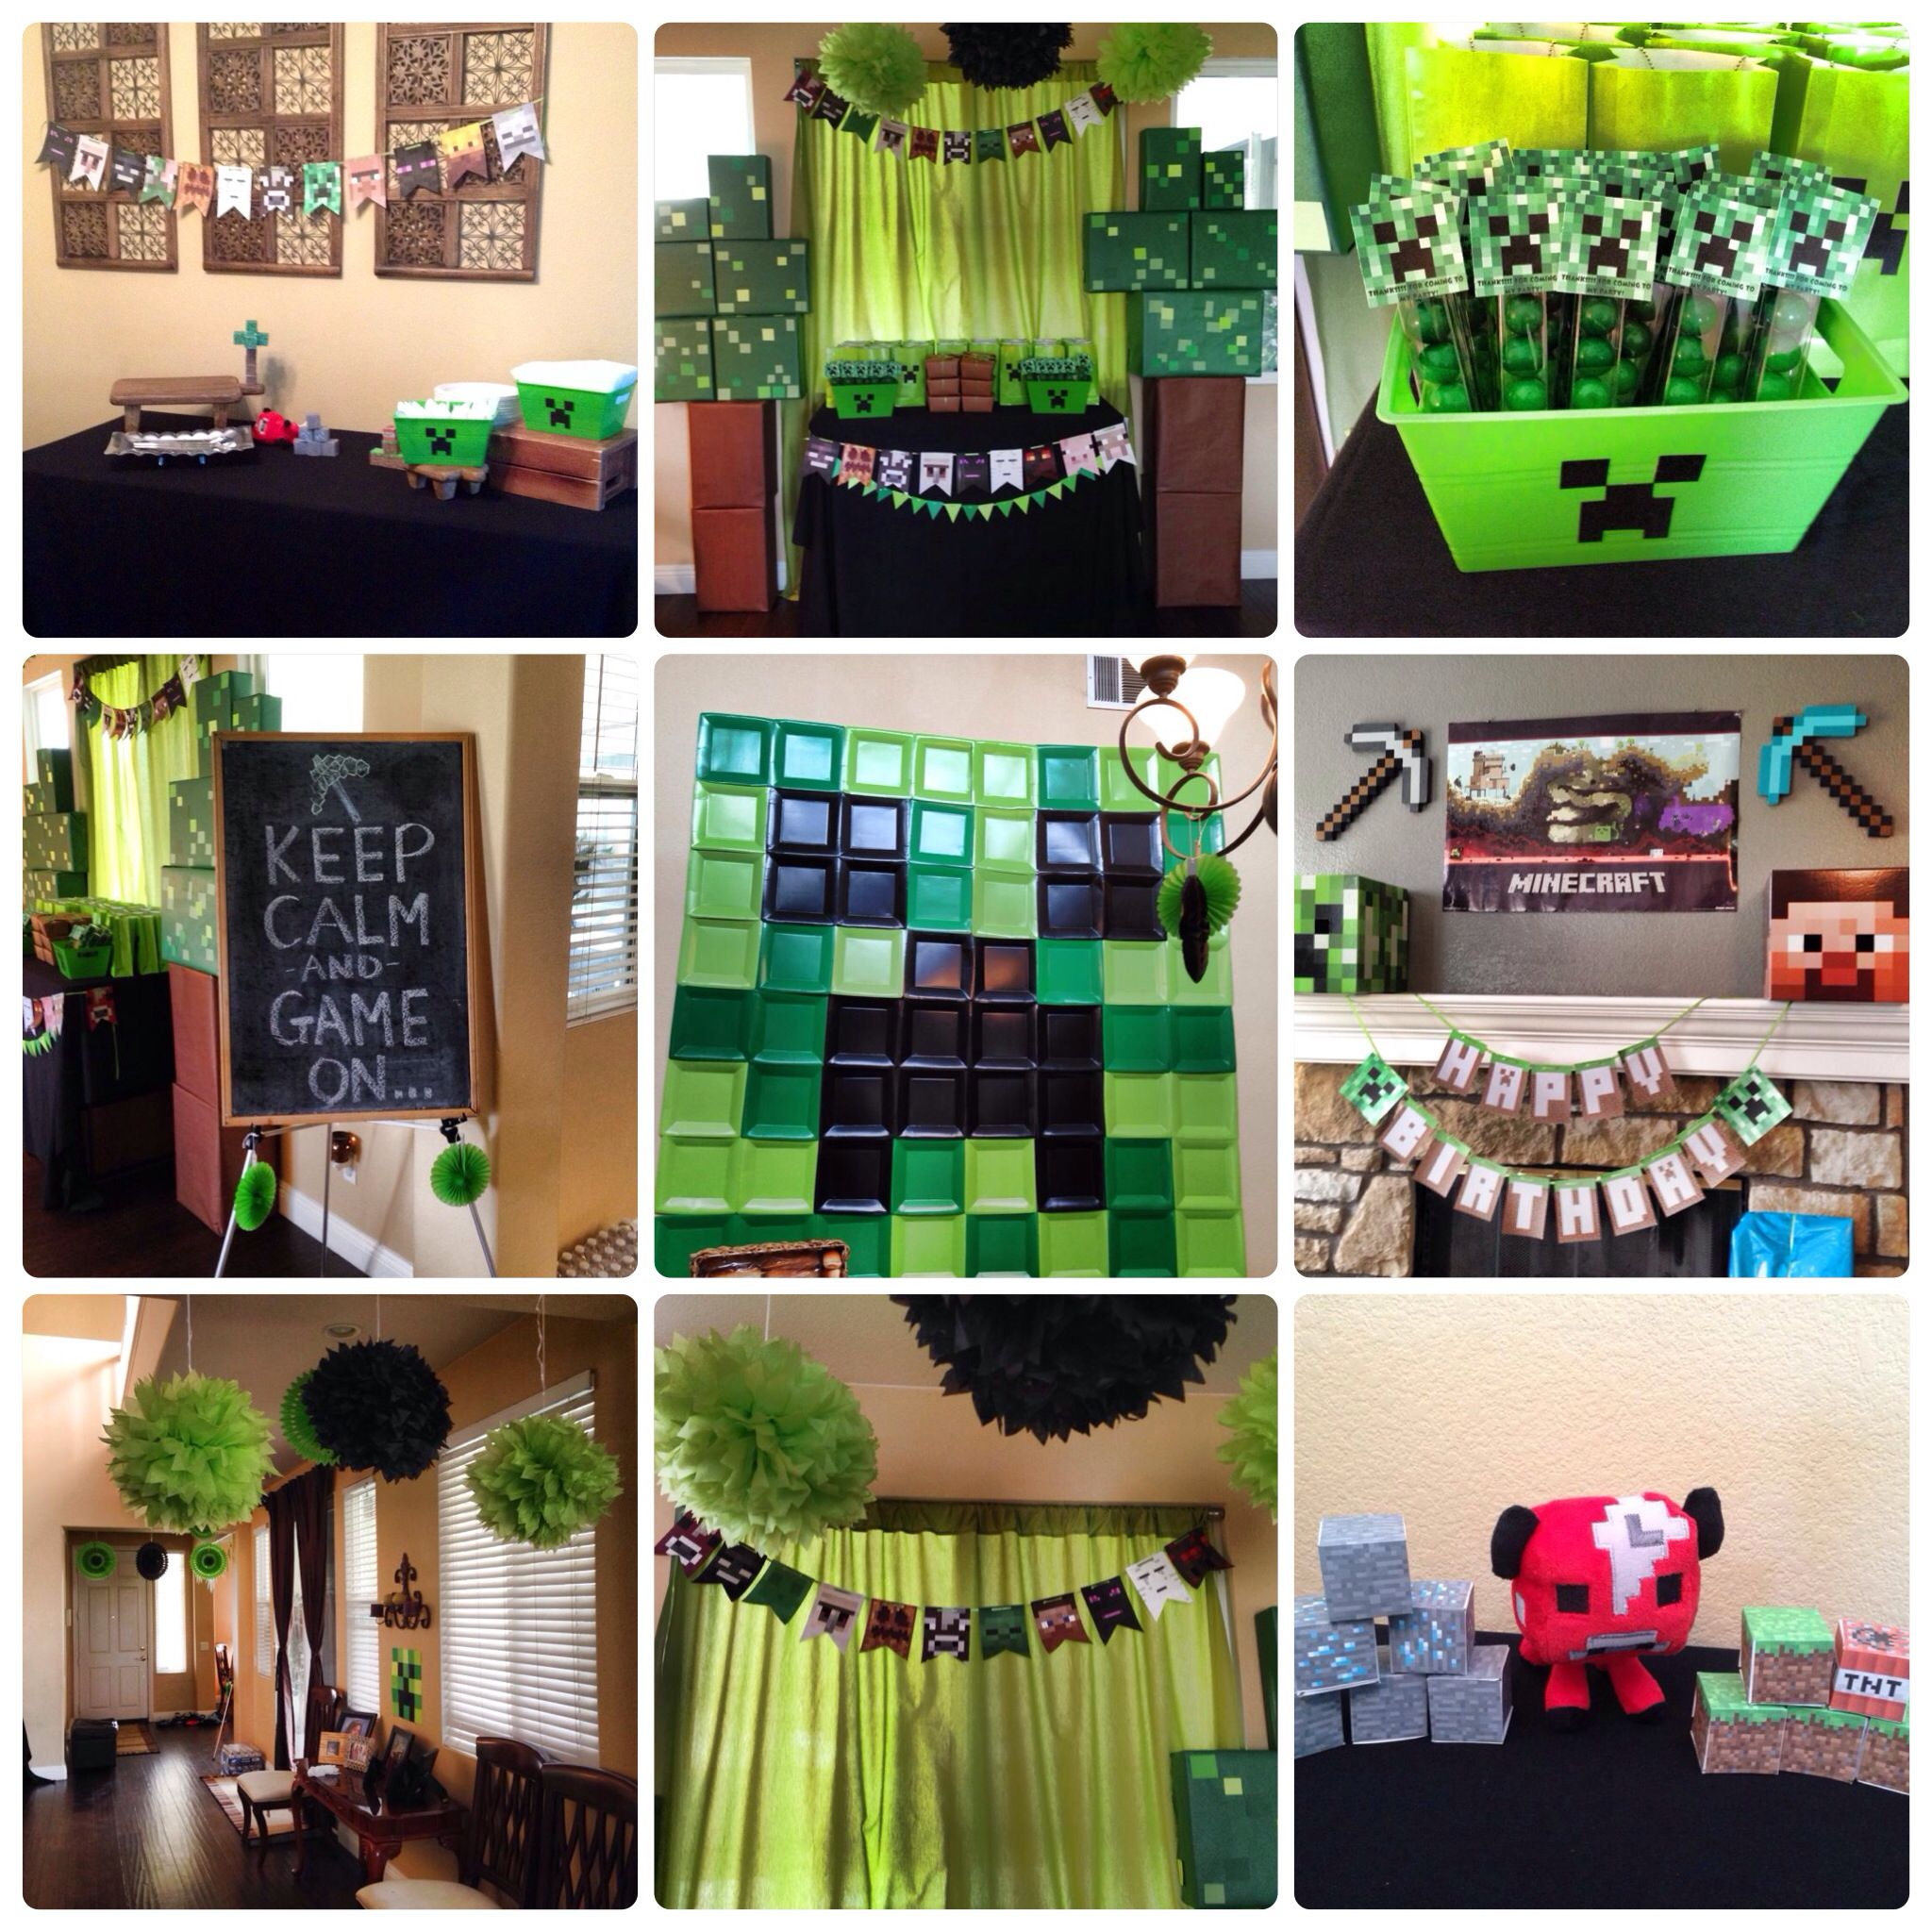 Minecraft Party Decorations Minecraft Party Decorations Jacksons Birthday Pinterest